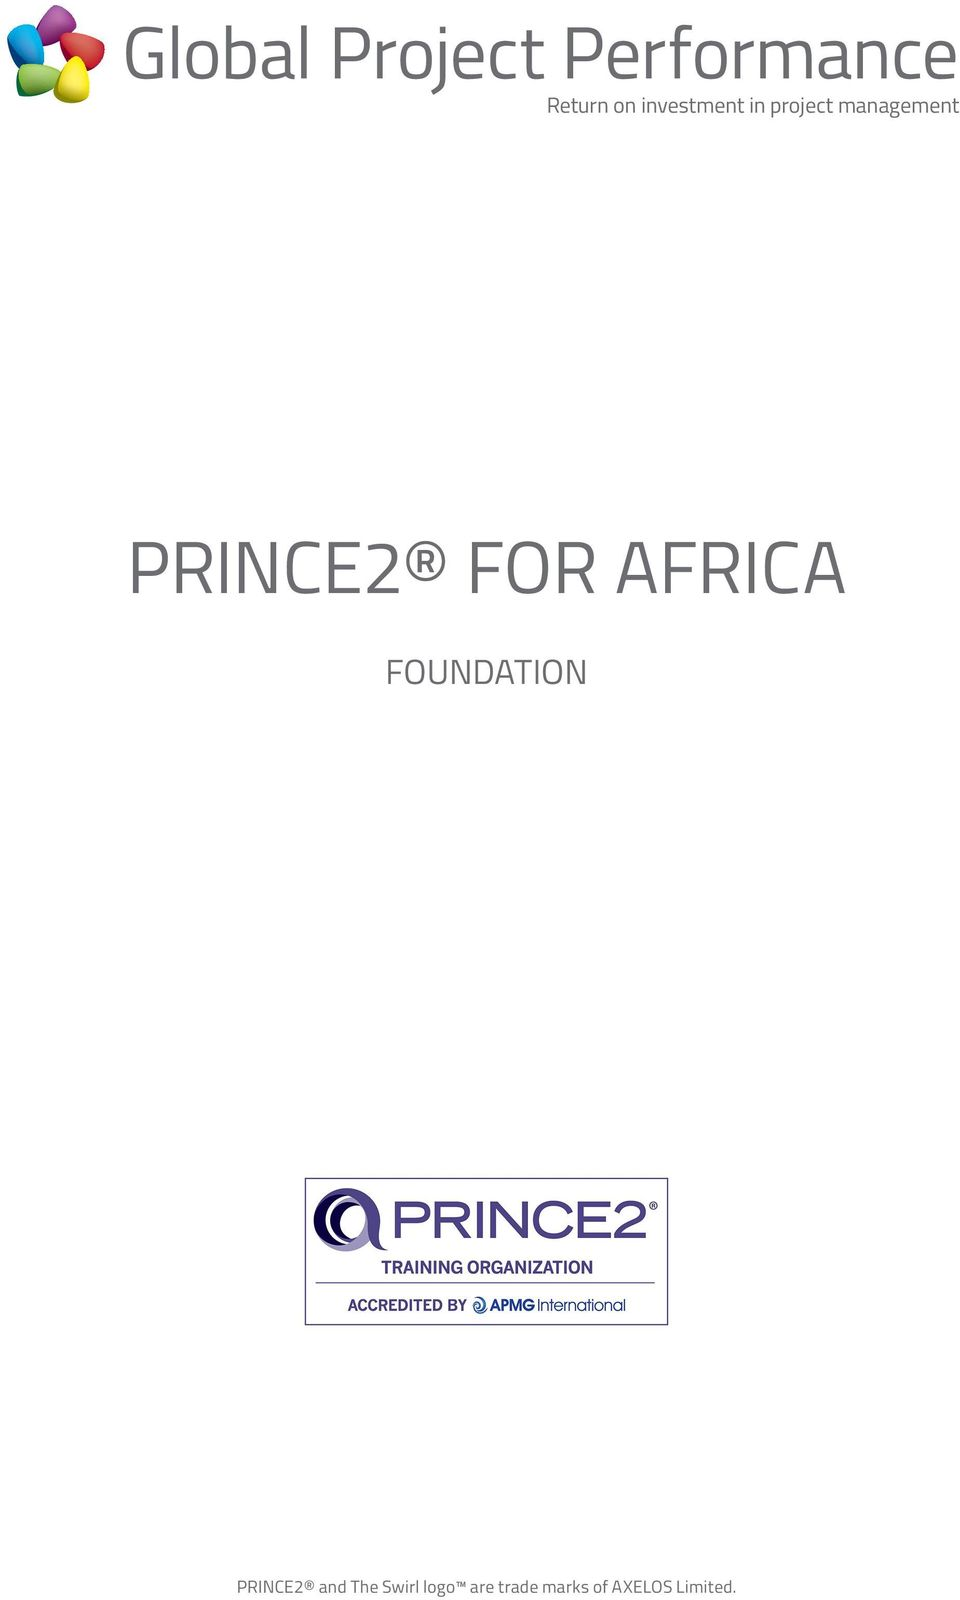 FOUNDATION PRINCE2 and The Swirl